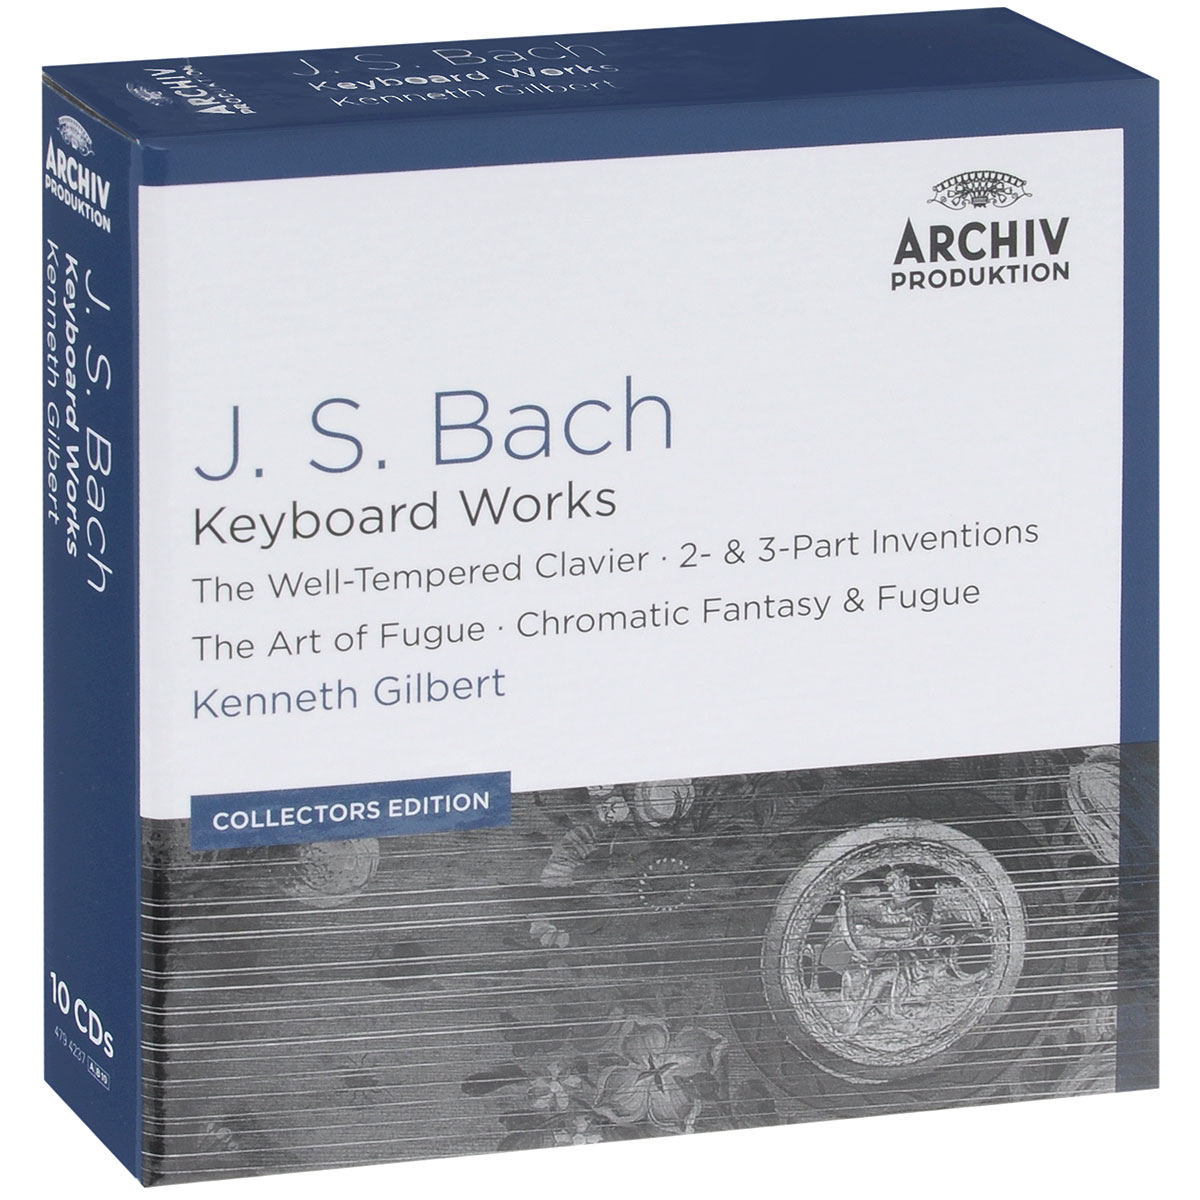 Кеннет Гилберт,Тревор Пиннок,Ларс Мортенсен,Николас Крэмер J.S. Bach. Keyboard Works. Kenneth Gilbert. Collectors Edition (10 CD) fuga короб прямоугольный 12х12х21 см 11 03 5 1 1 4 03 fuga